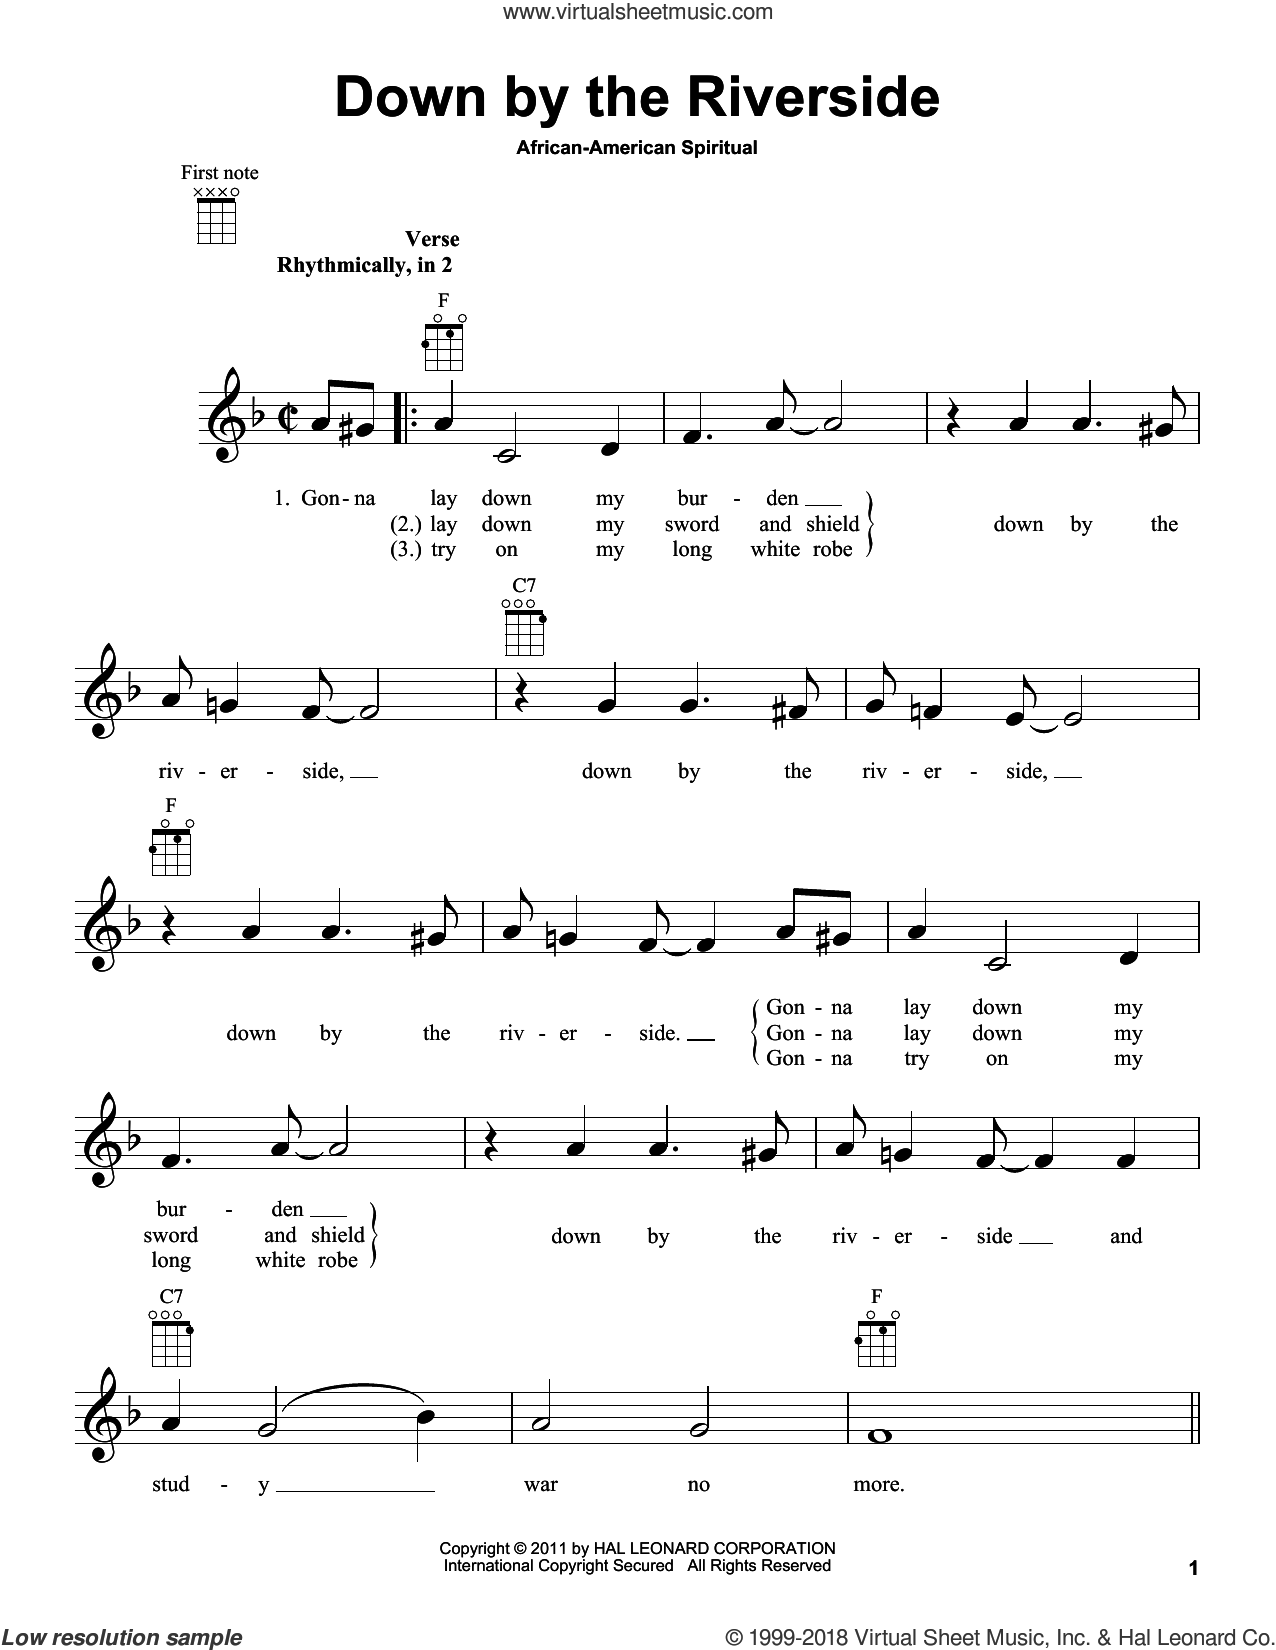 Down By The Riverside sheet music for ukulele